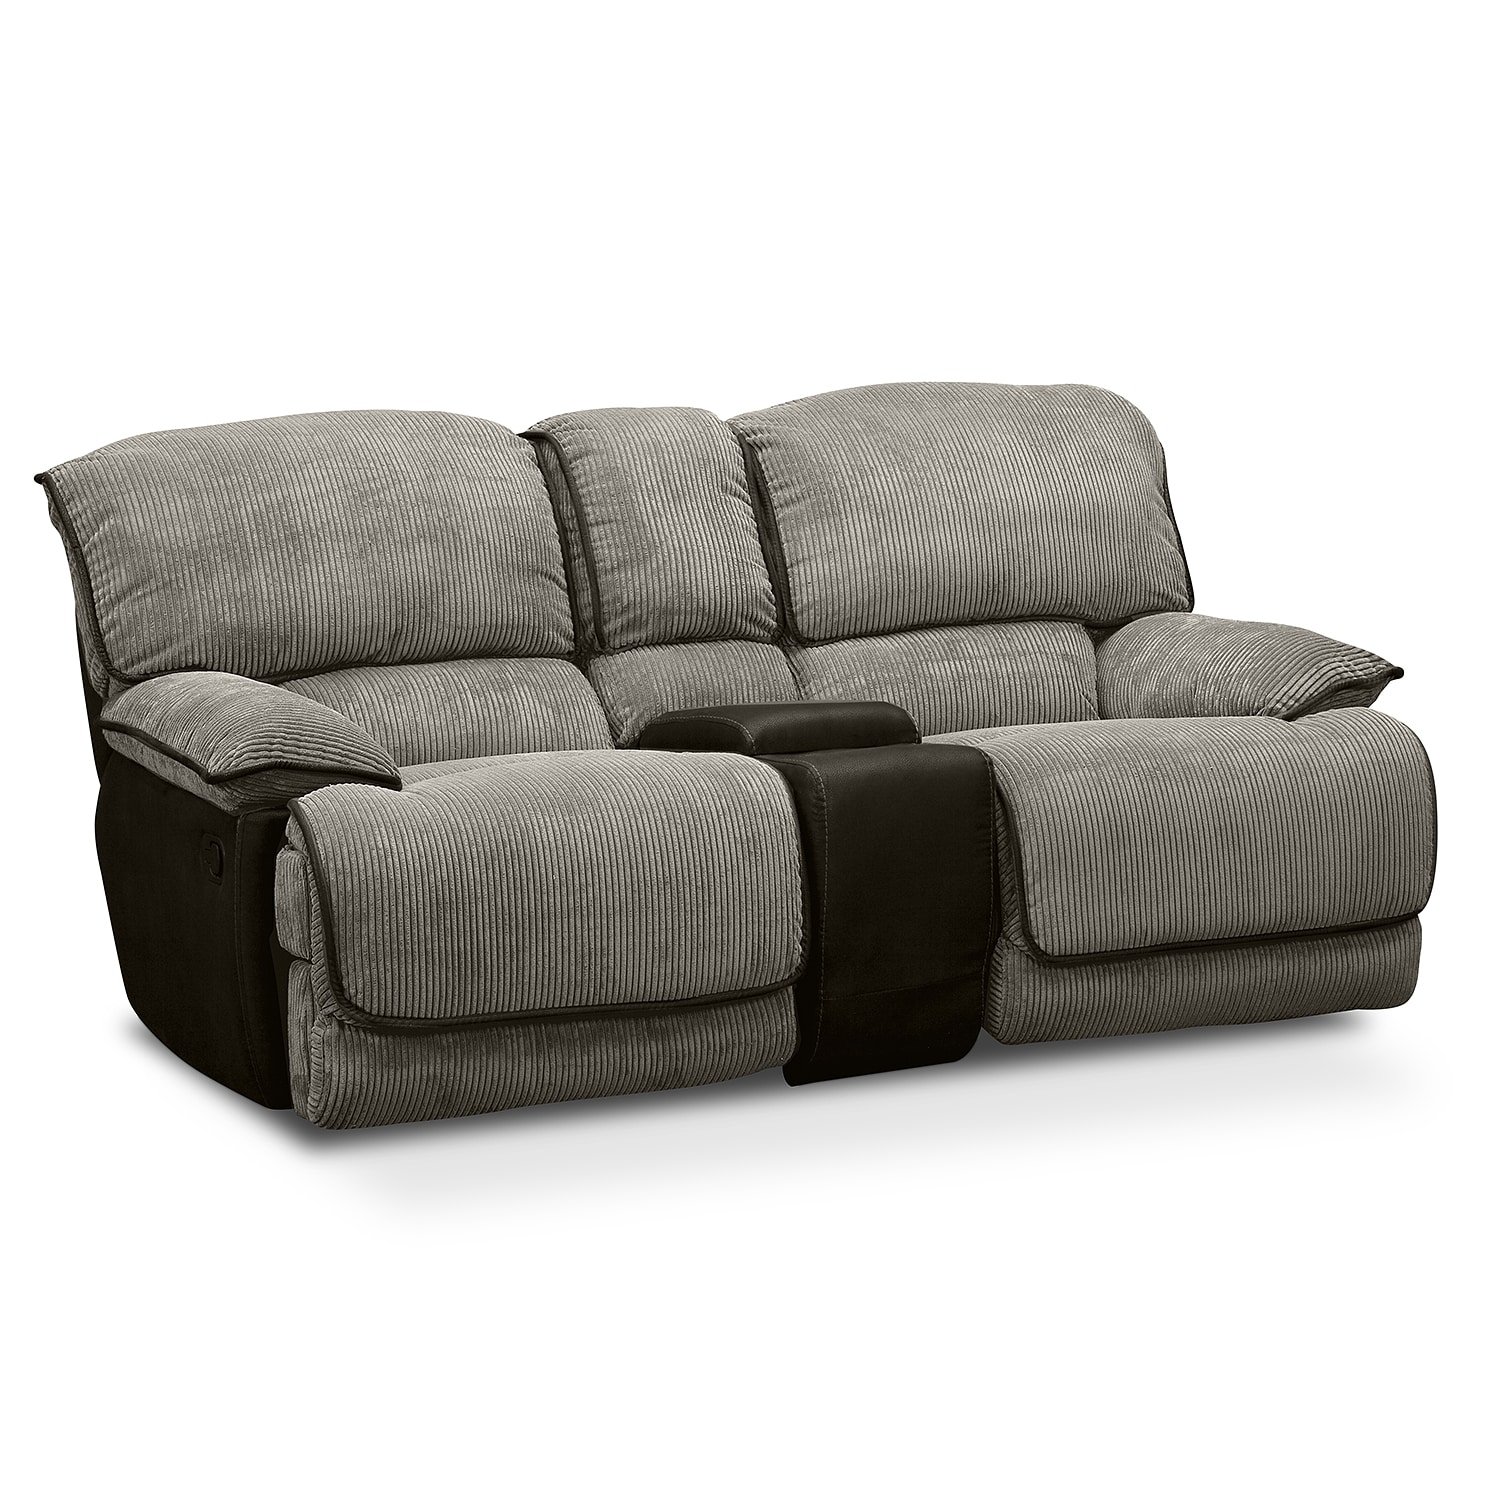 Laguna ii gliding reclining loveseat value city furniture Reclining loveseat sale